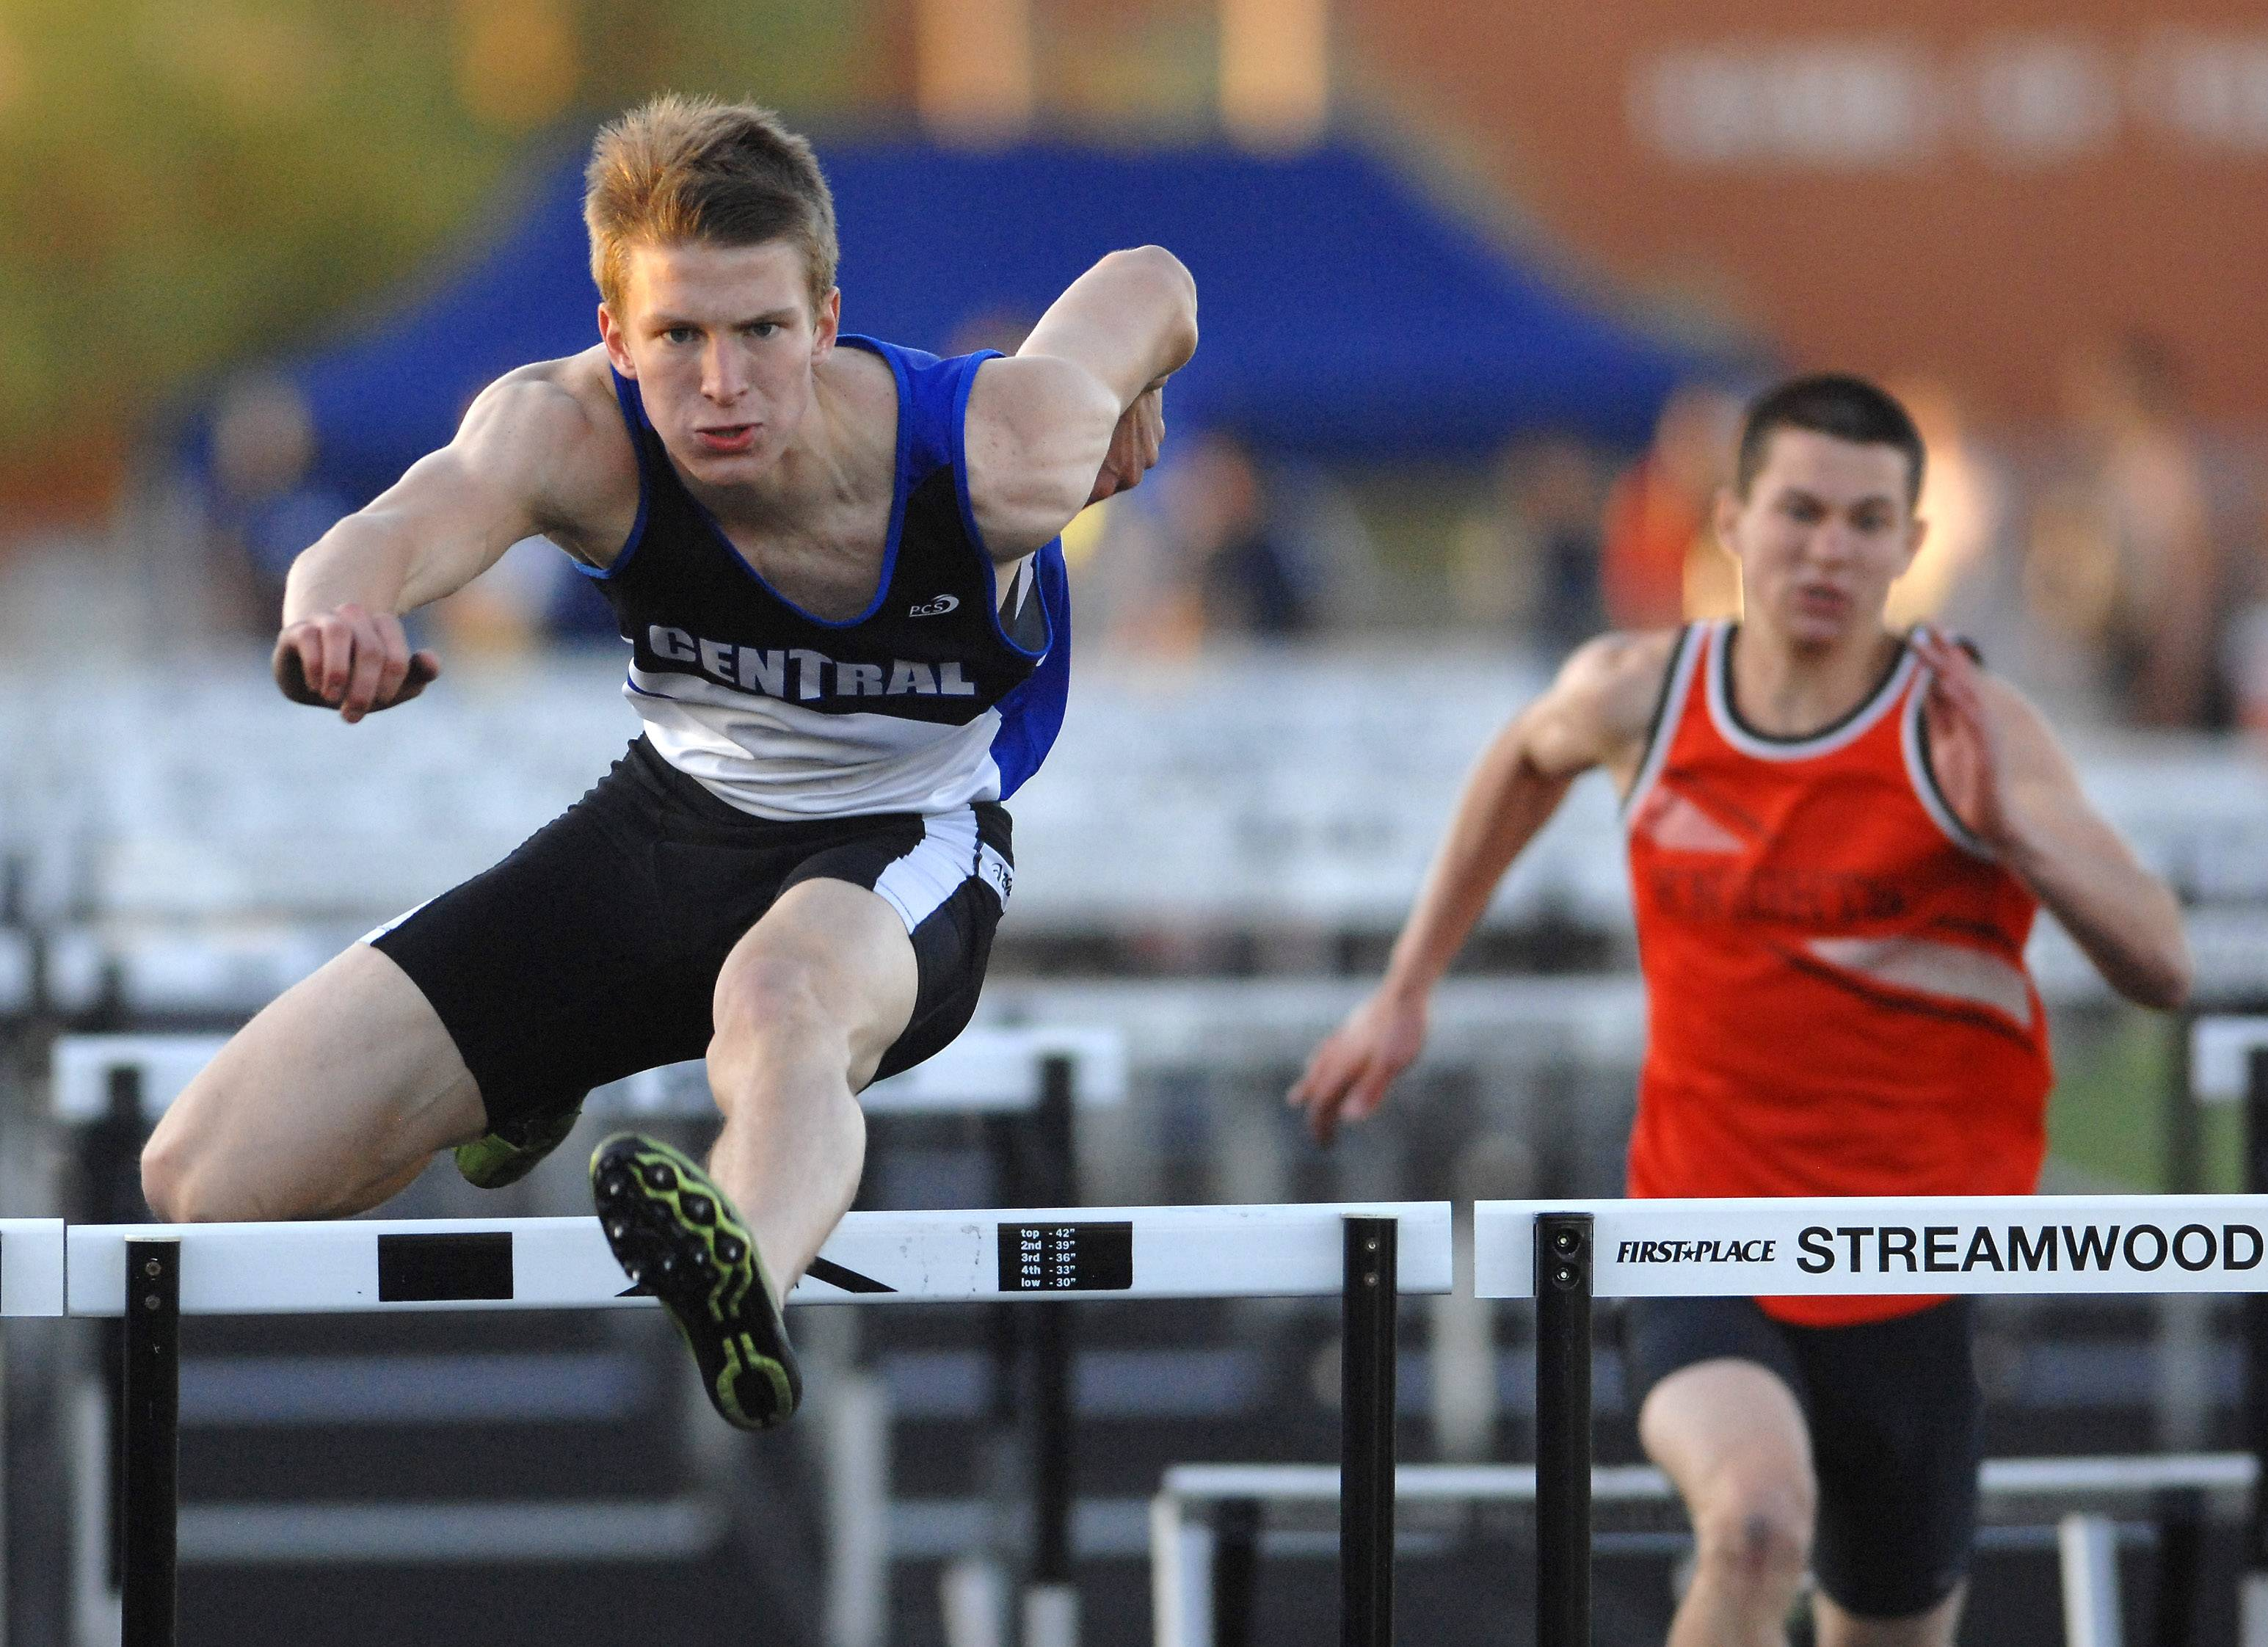 Lucas Ege of Burlington Central finished first in the 110-meter hurdles at the Kane County boys track meet in Streamwood Friday.